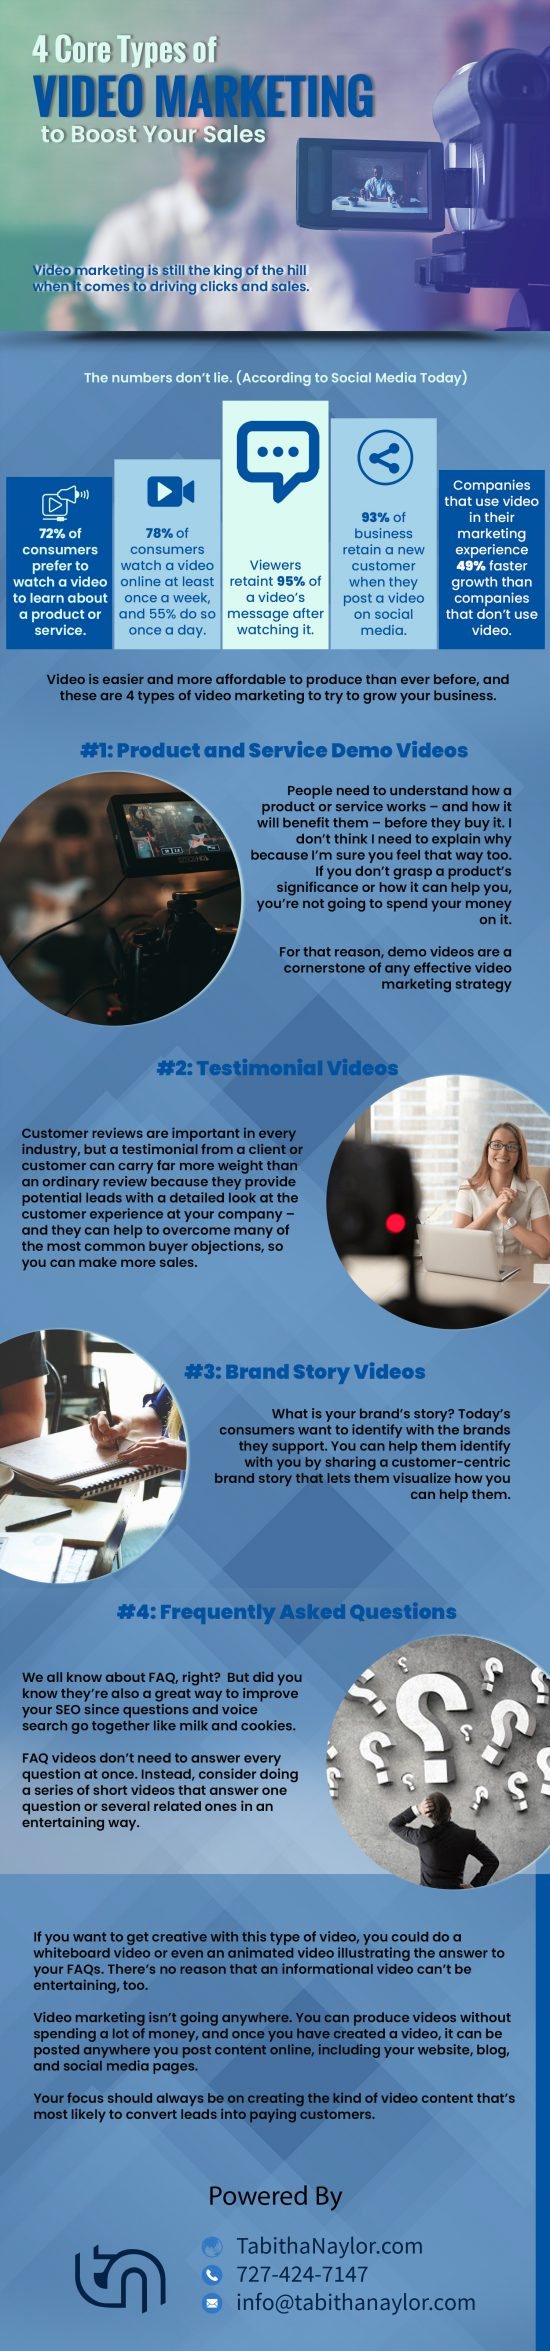 4-Core-Types-of-Video-Marketing-to-Boost-Your-Sales-550x2351